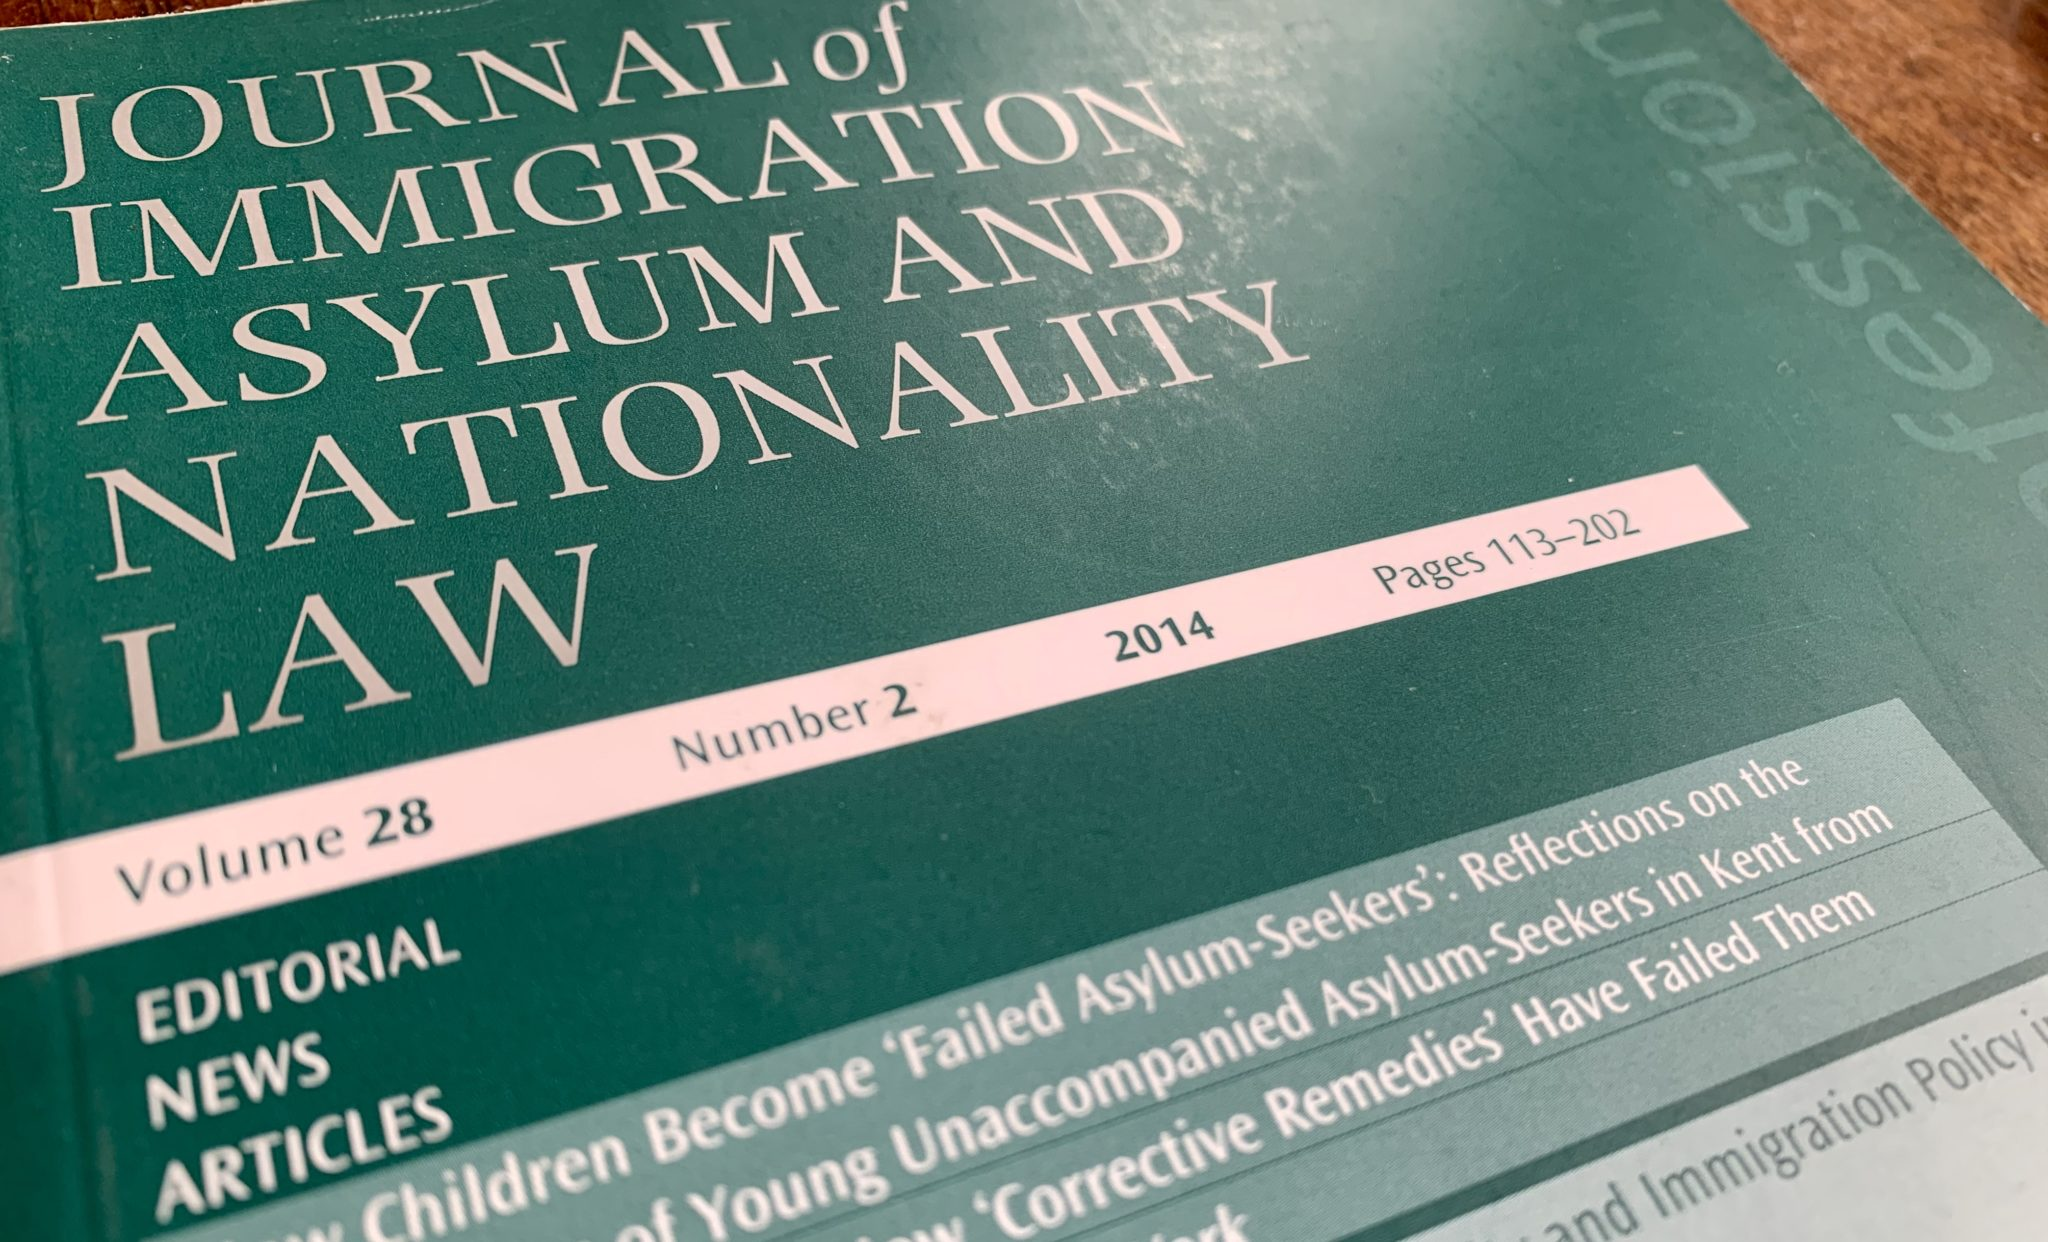 Deputy editor sought for Journal of Immigration, Asylum and Nationality Law